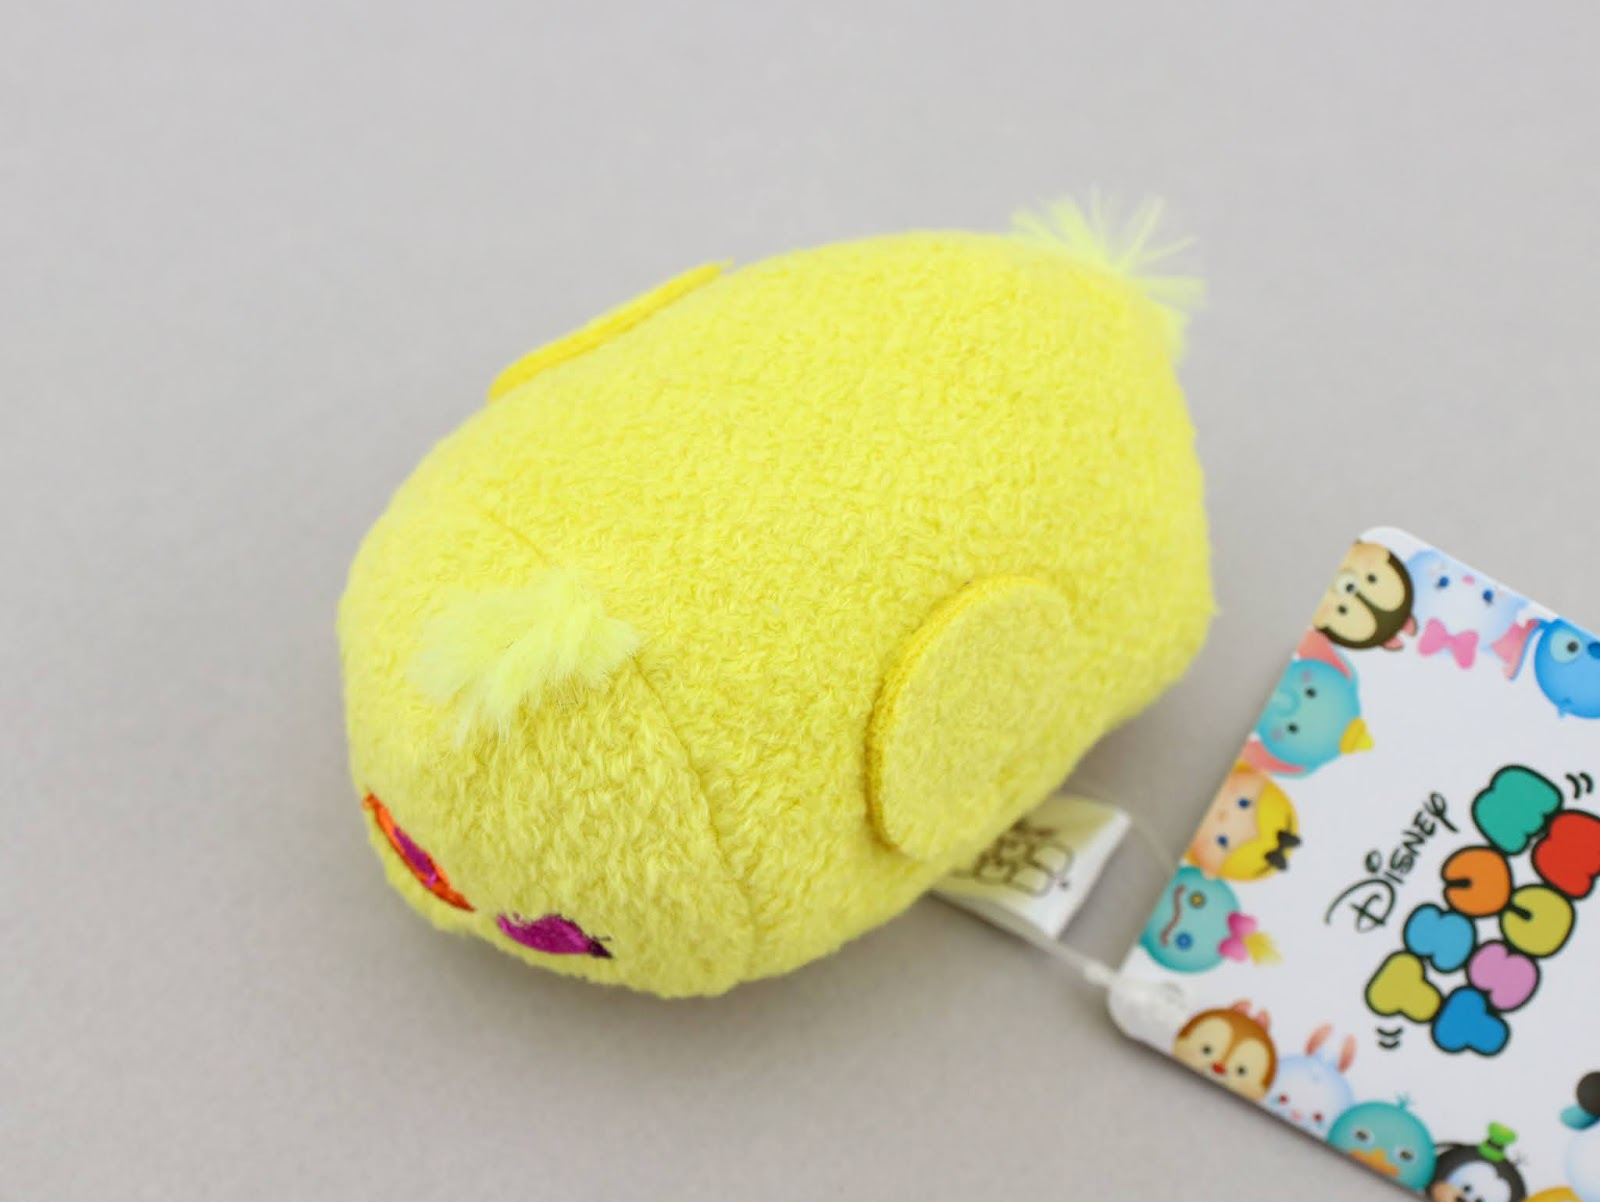 toy story 4 tsum tsums ducky